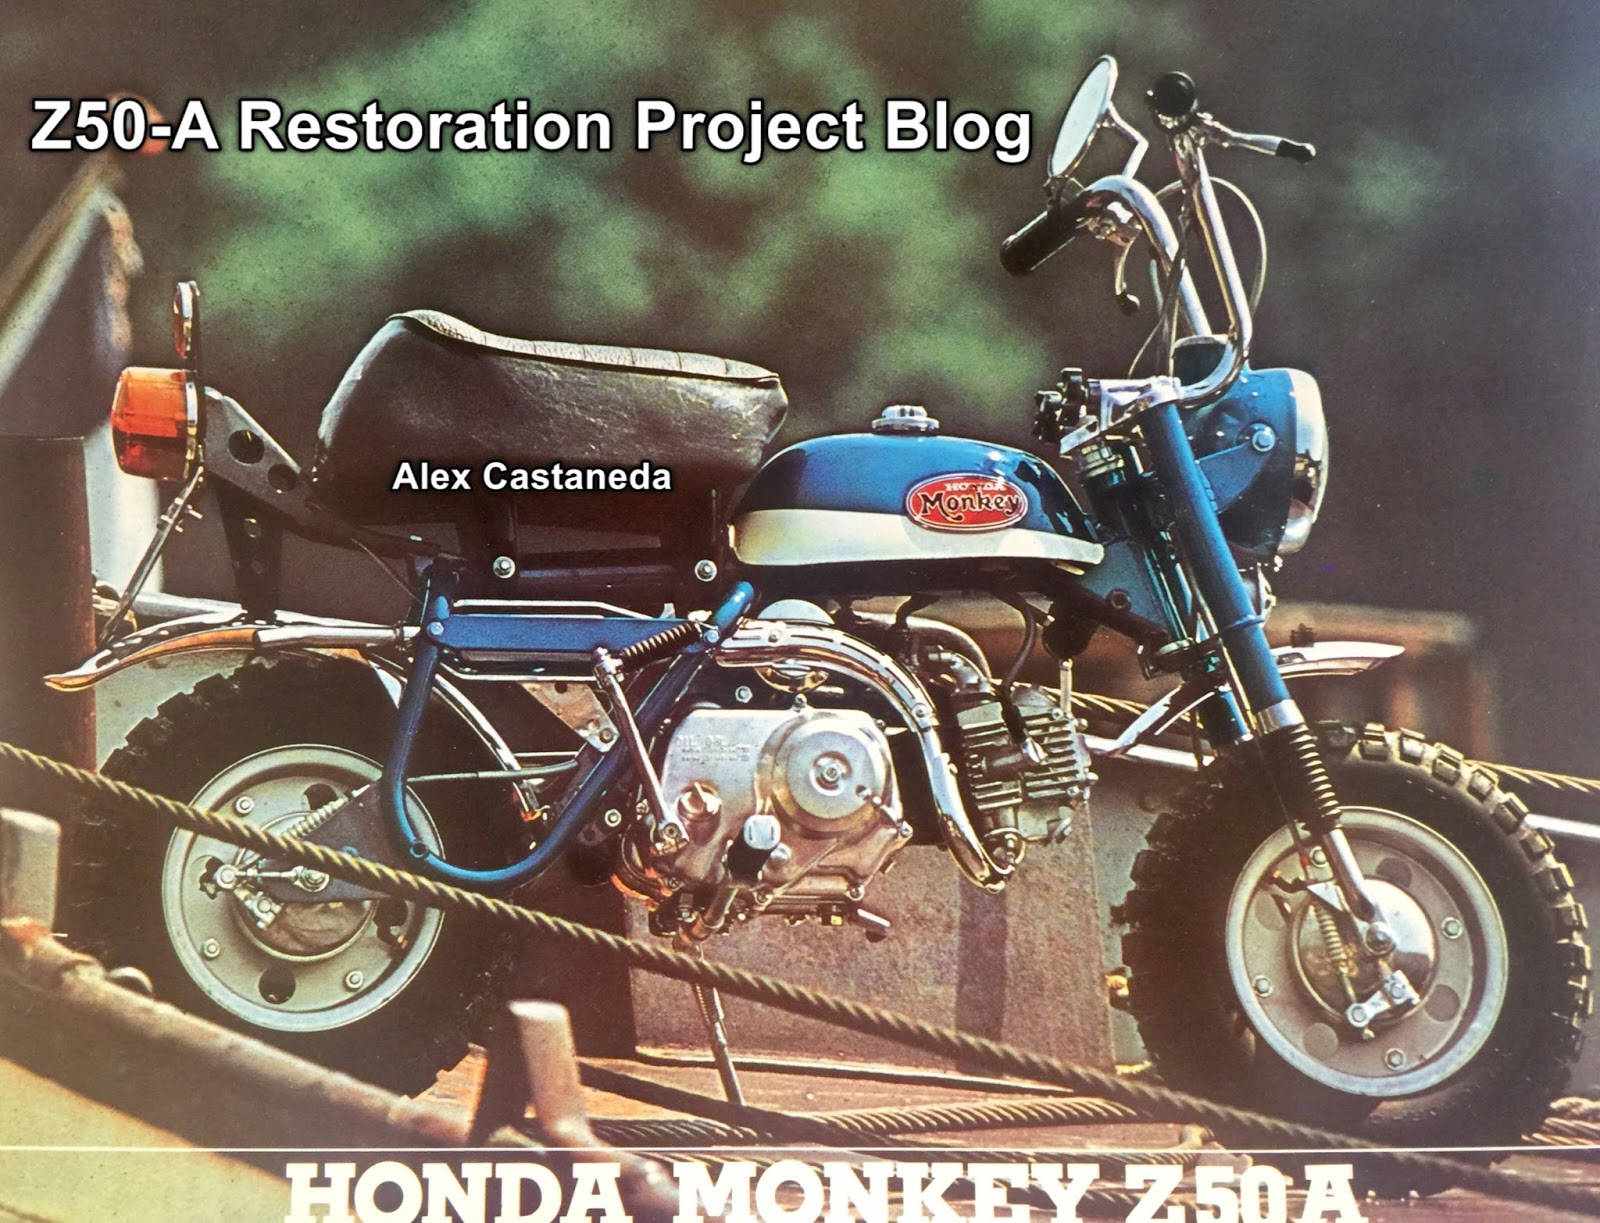 Honda Z50a General Export Type Sweden And Uk Model Mini Trail 1970 Ct70 Sapphire Blue As I Was Finishing Writing This Posting Found Someone Who Has An Original Owners Manual Written In English Which Includes The Bike